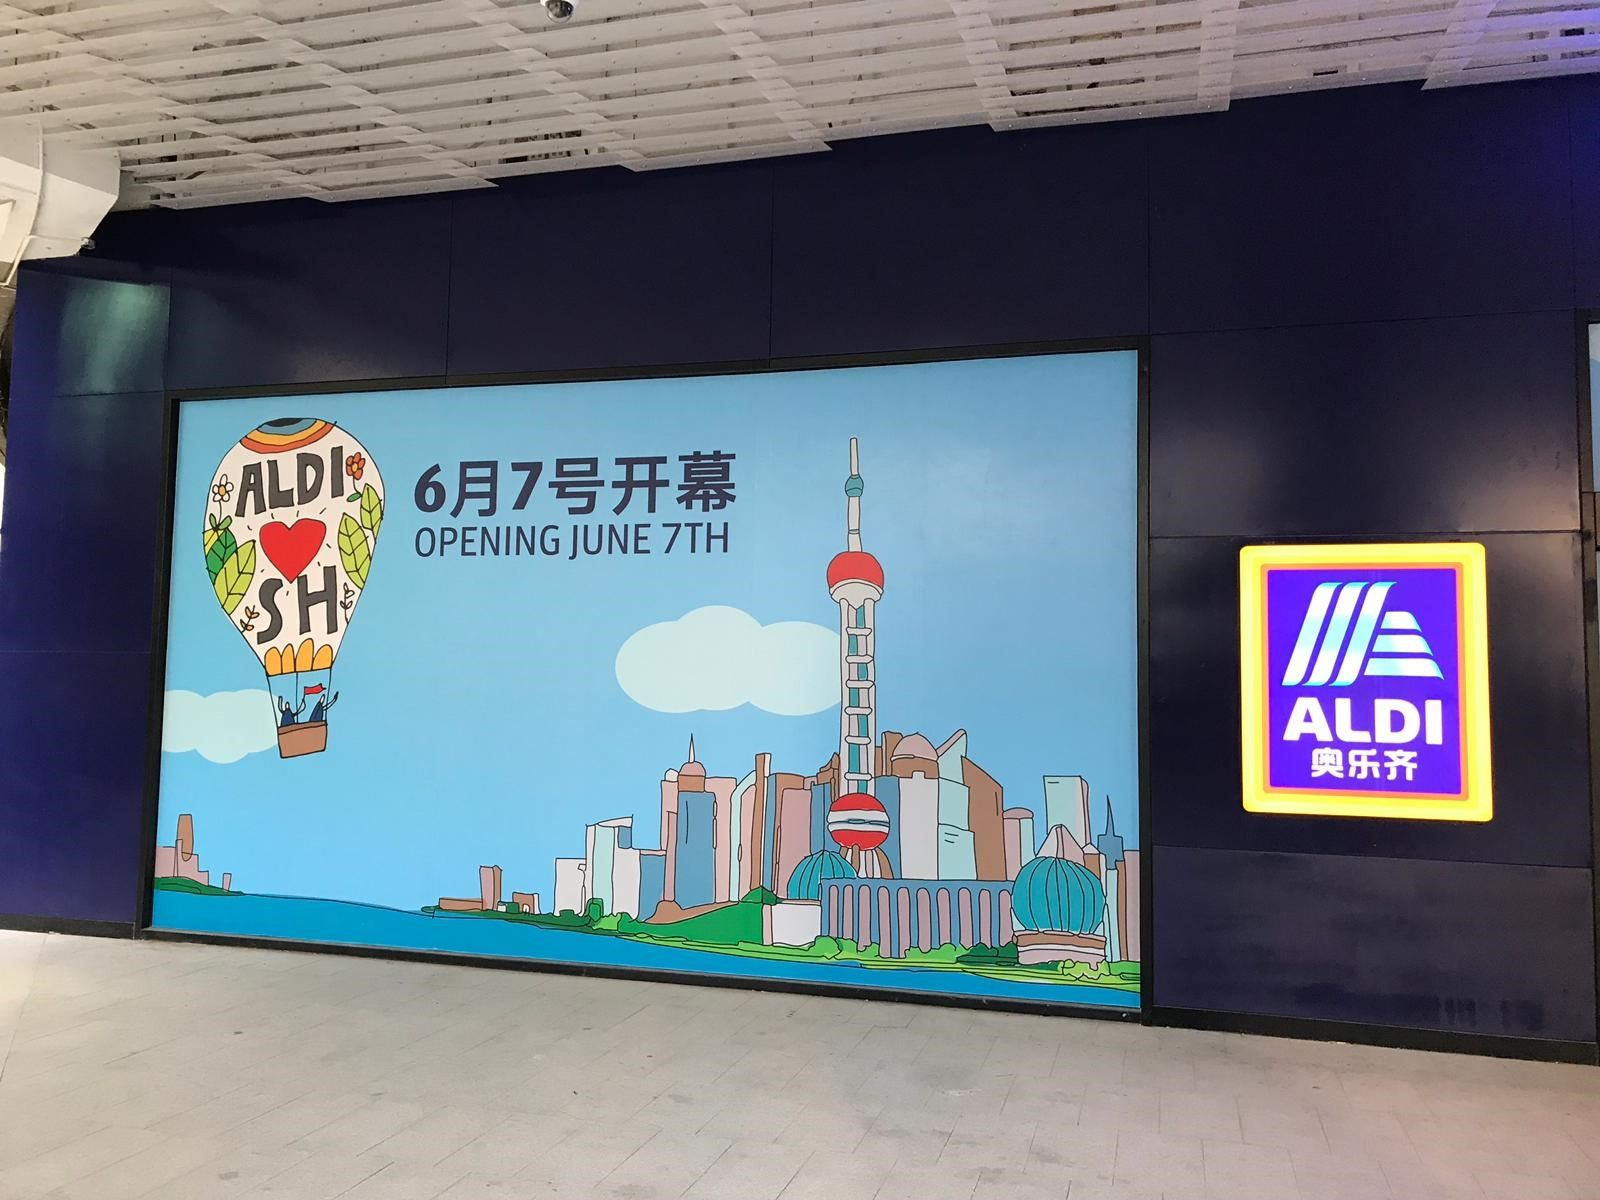 Aldi in China